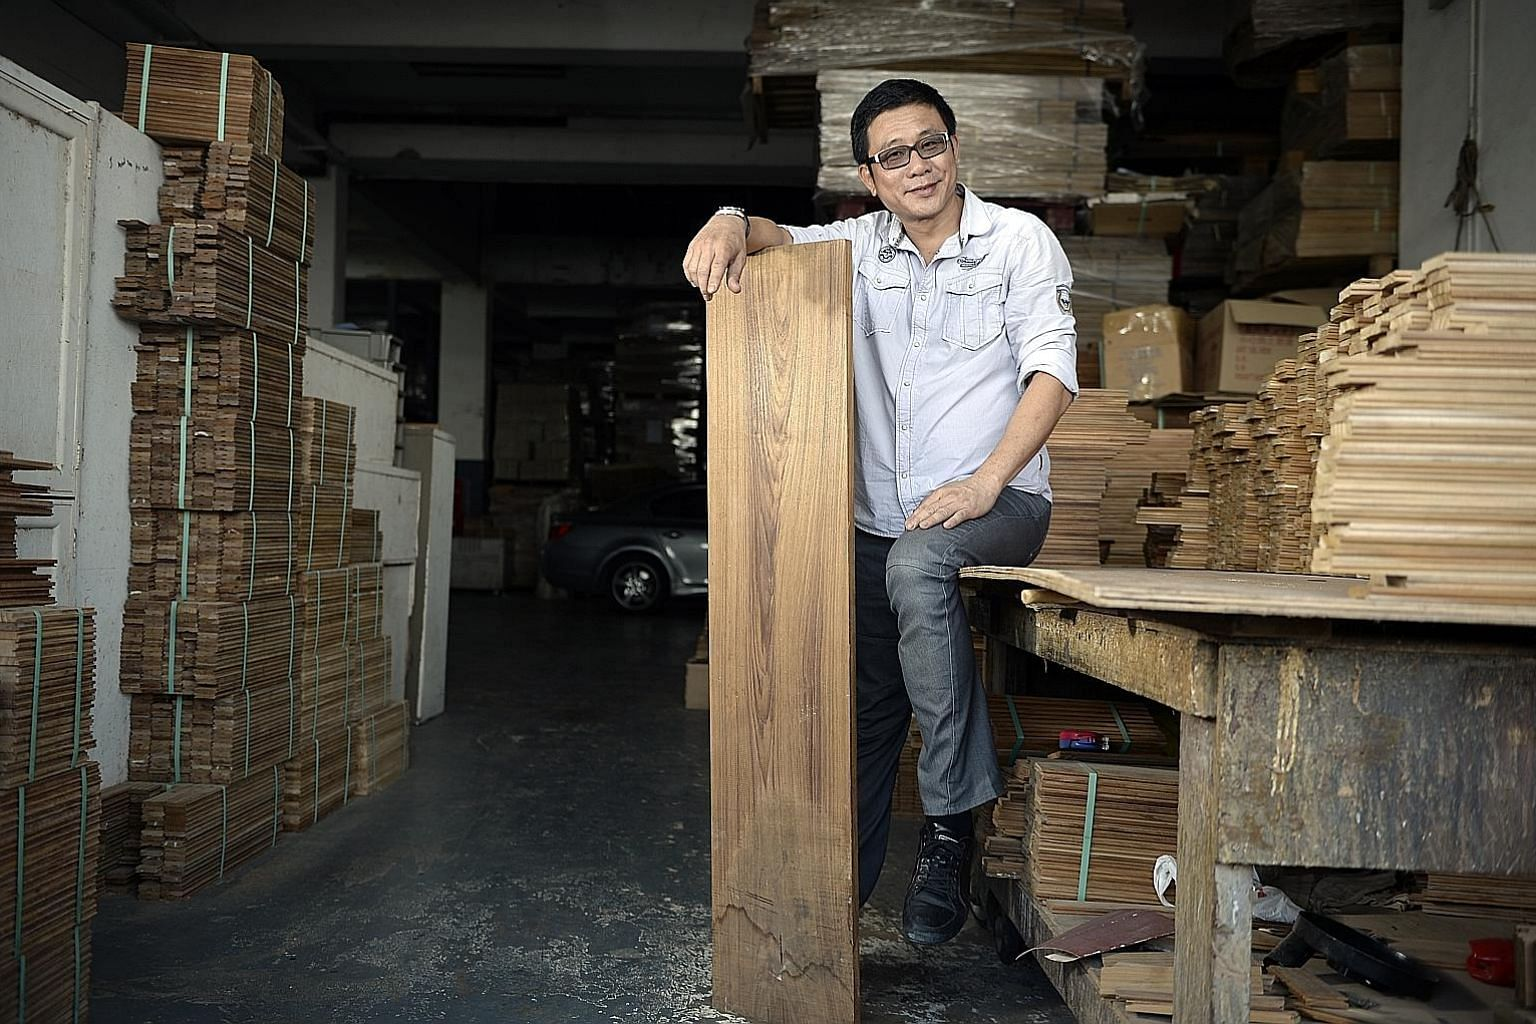 As founder of Jason Holdings, Mr Jason Sim Chon Ang oversaw the sale and marketing team of wholly owned subsidiary Jason Parquet Specialist (Singapore) before its liquidation on June 10, 2016.